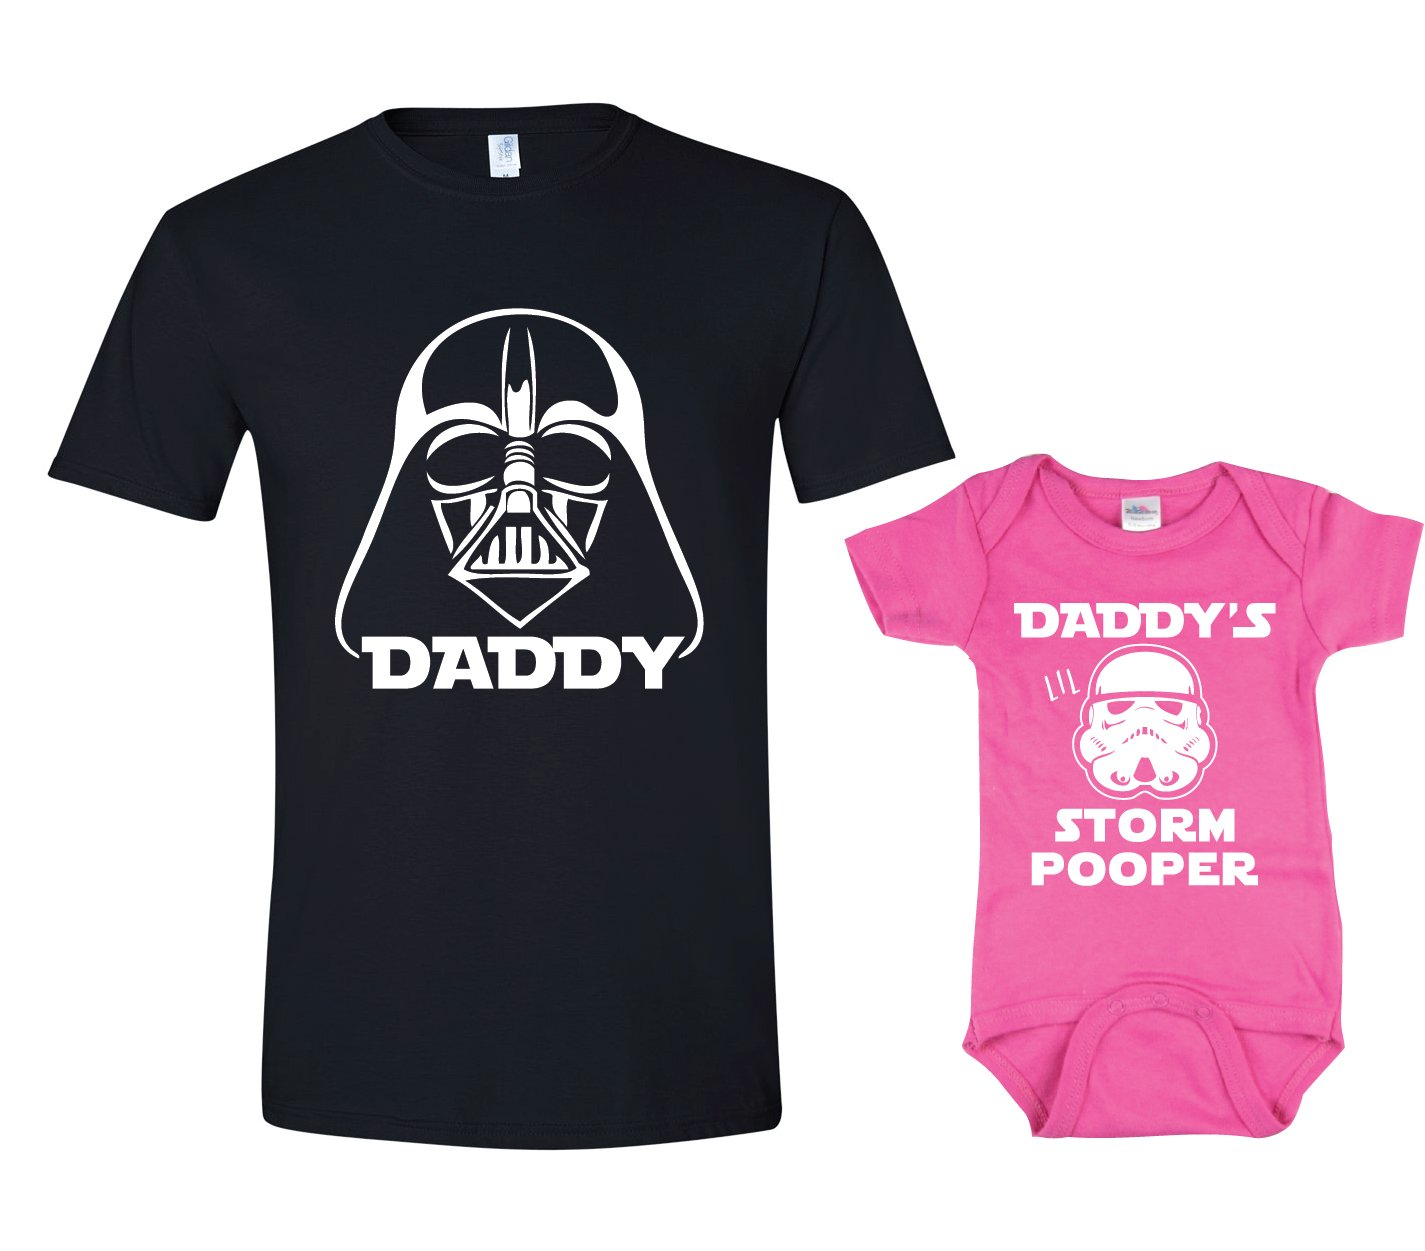 Shirt for Fathers Day Daddy Daughter Star Wars Shirt,Darth & Storm Pooper - Black & Pink,Mens (Medium) & 0-3 Month